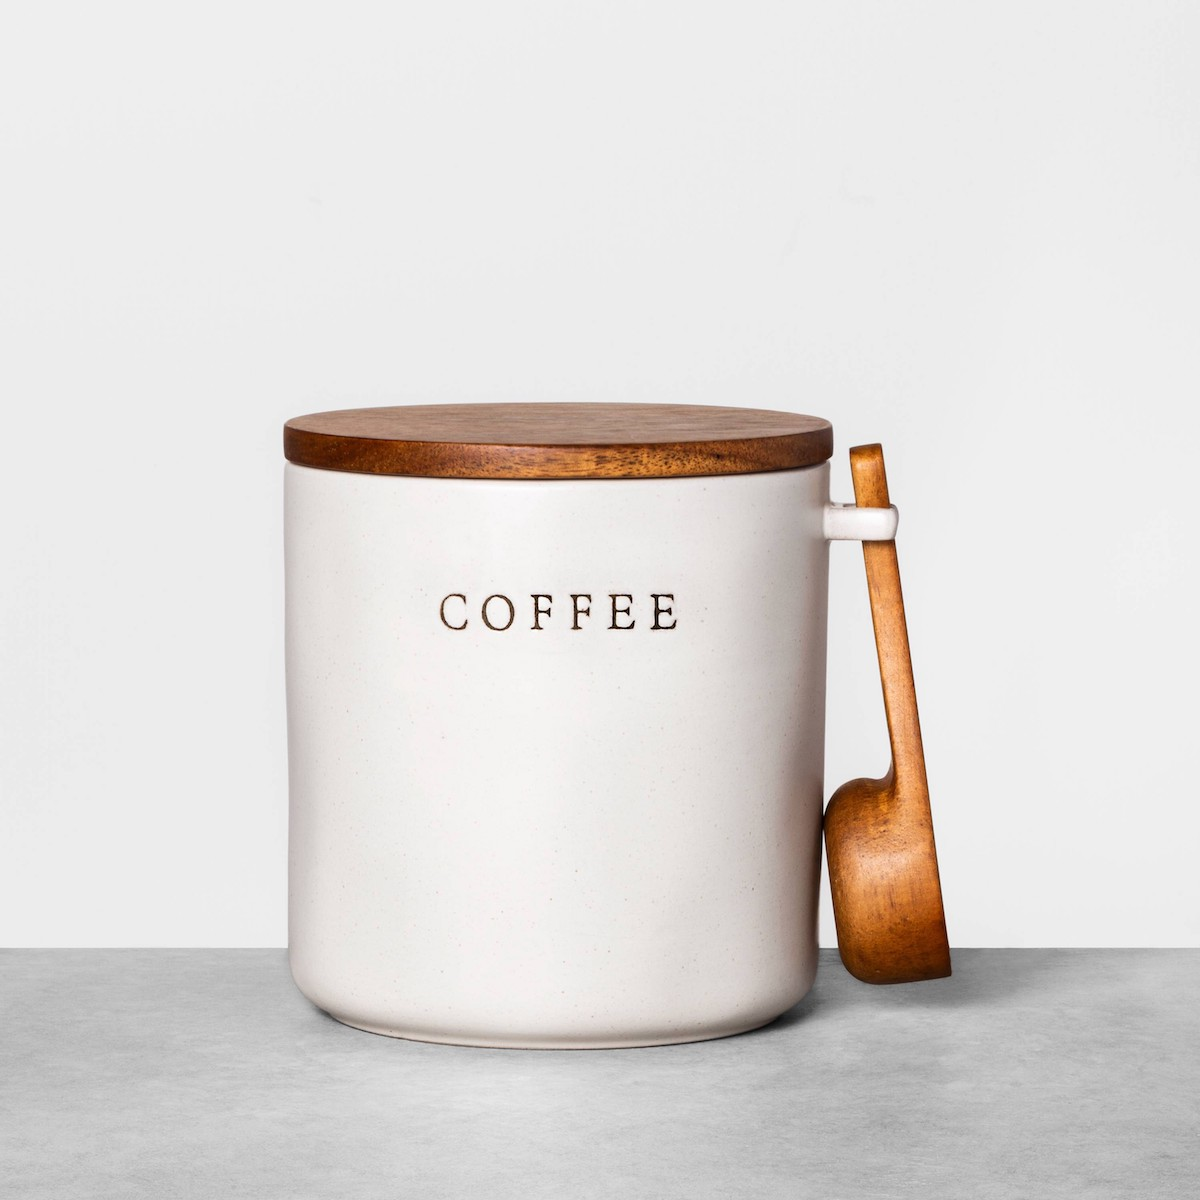 Target Joanna Gaines coffee canister with wooden spoon